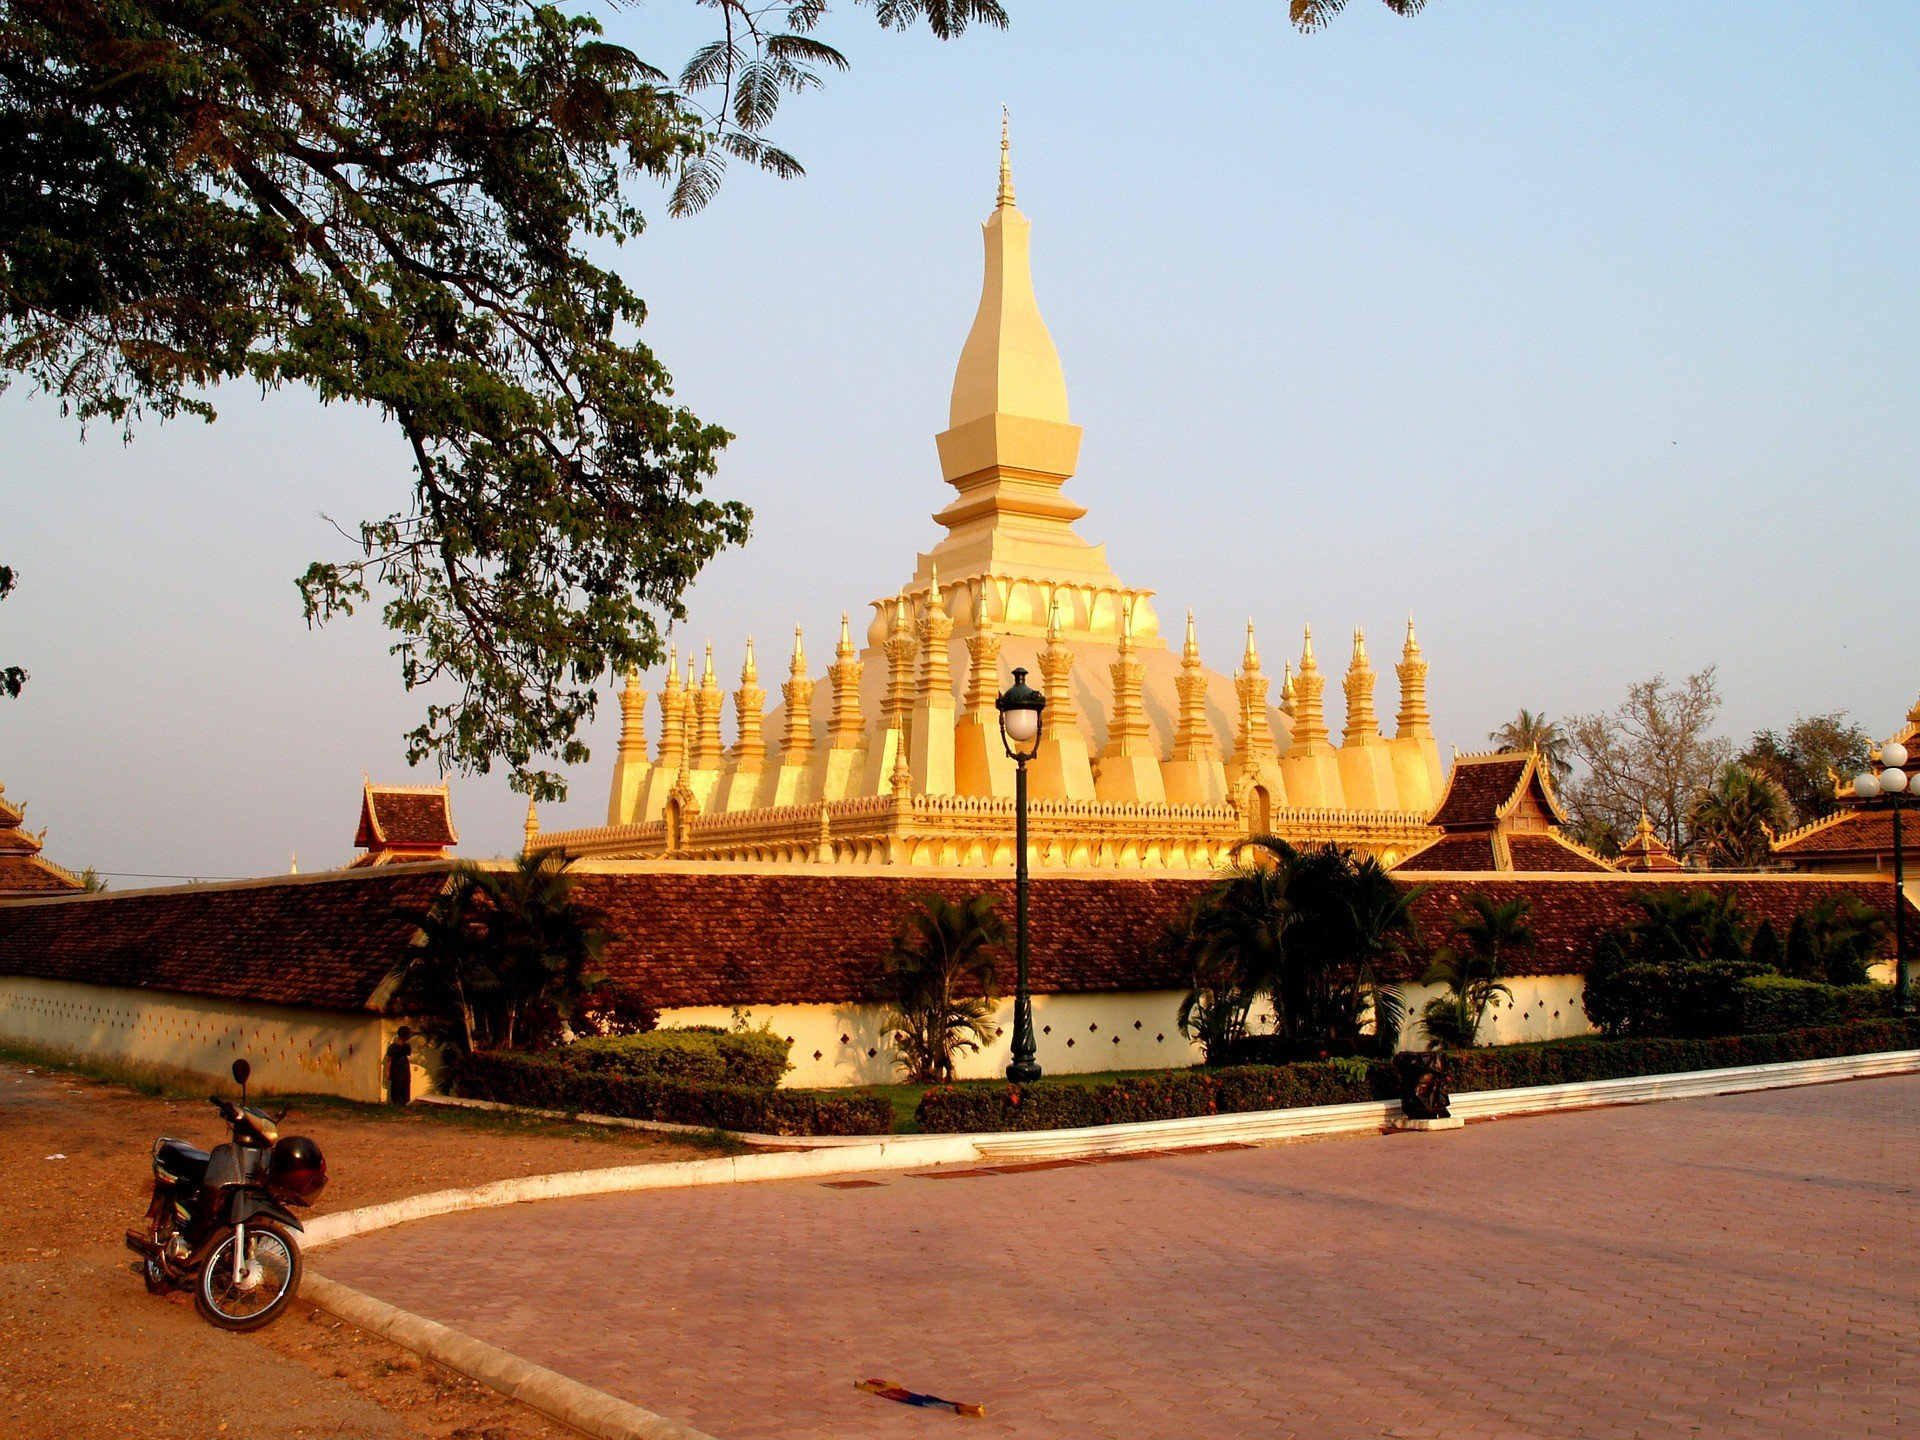 Celebrate the Golden Stupa!